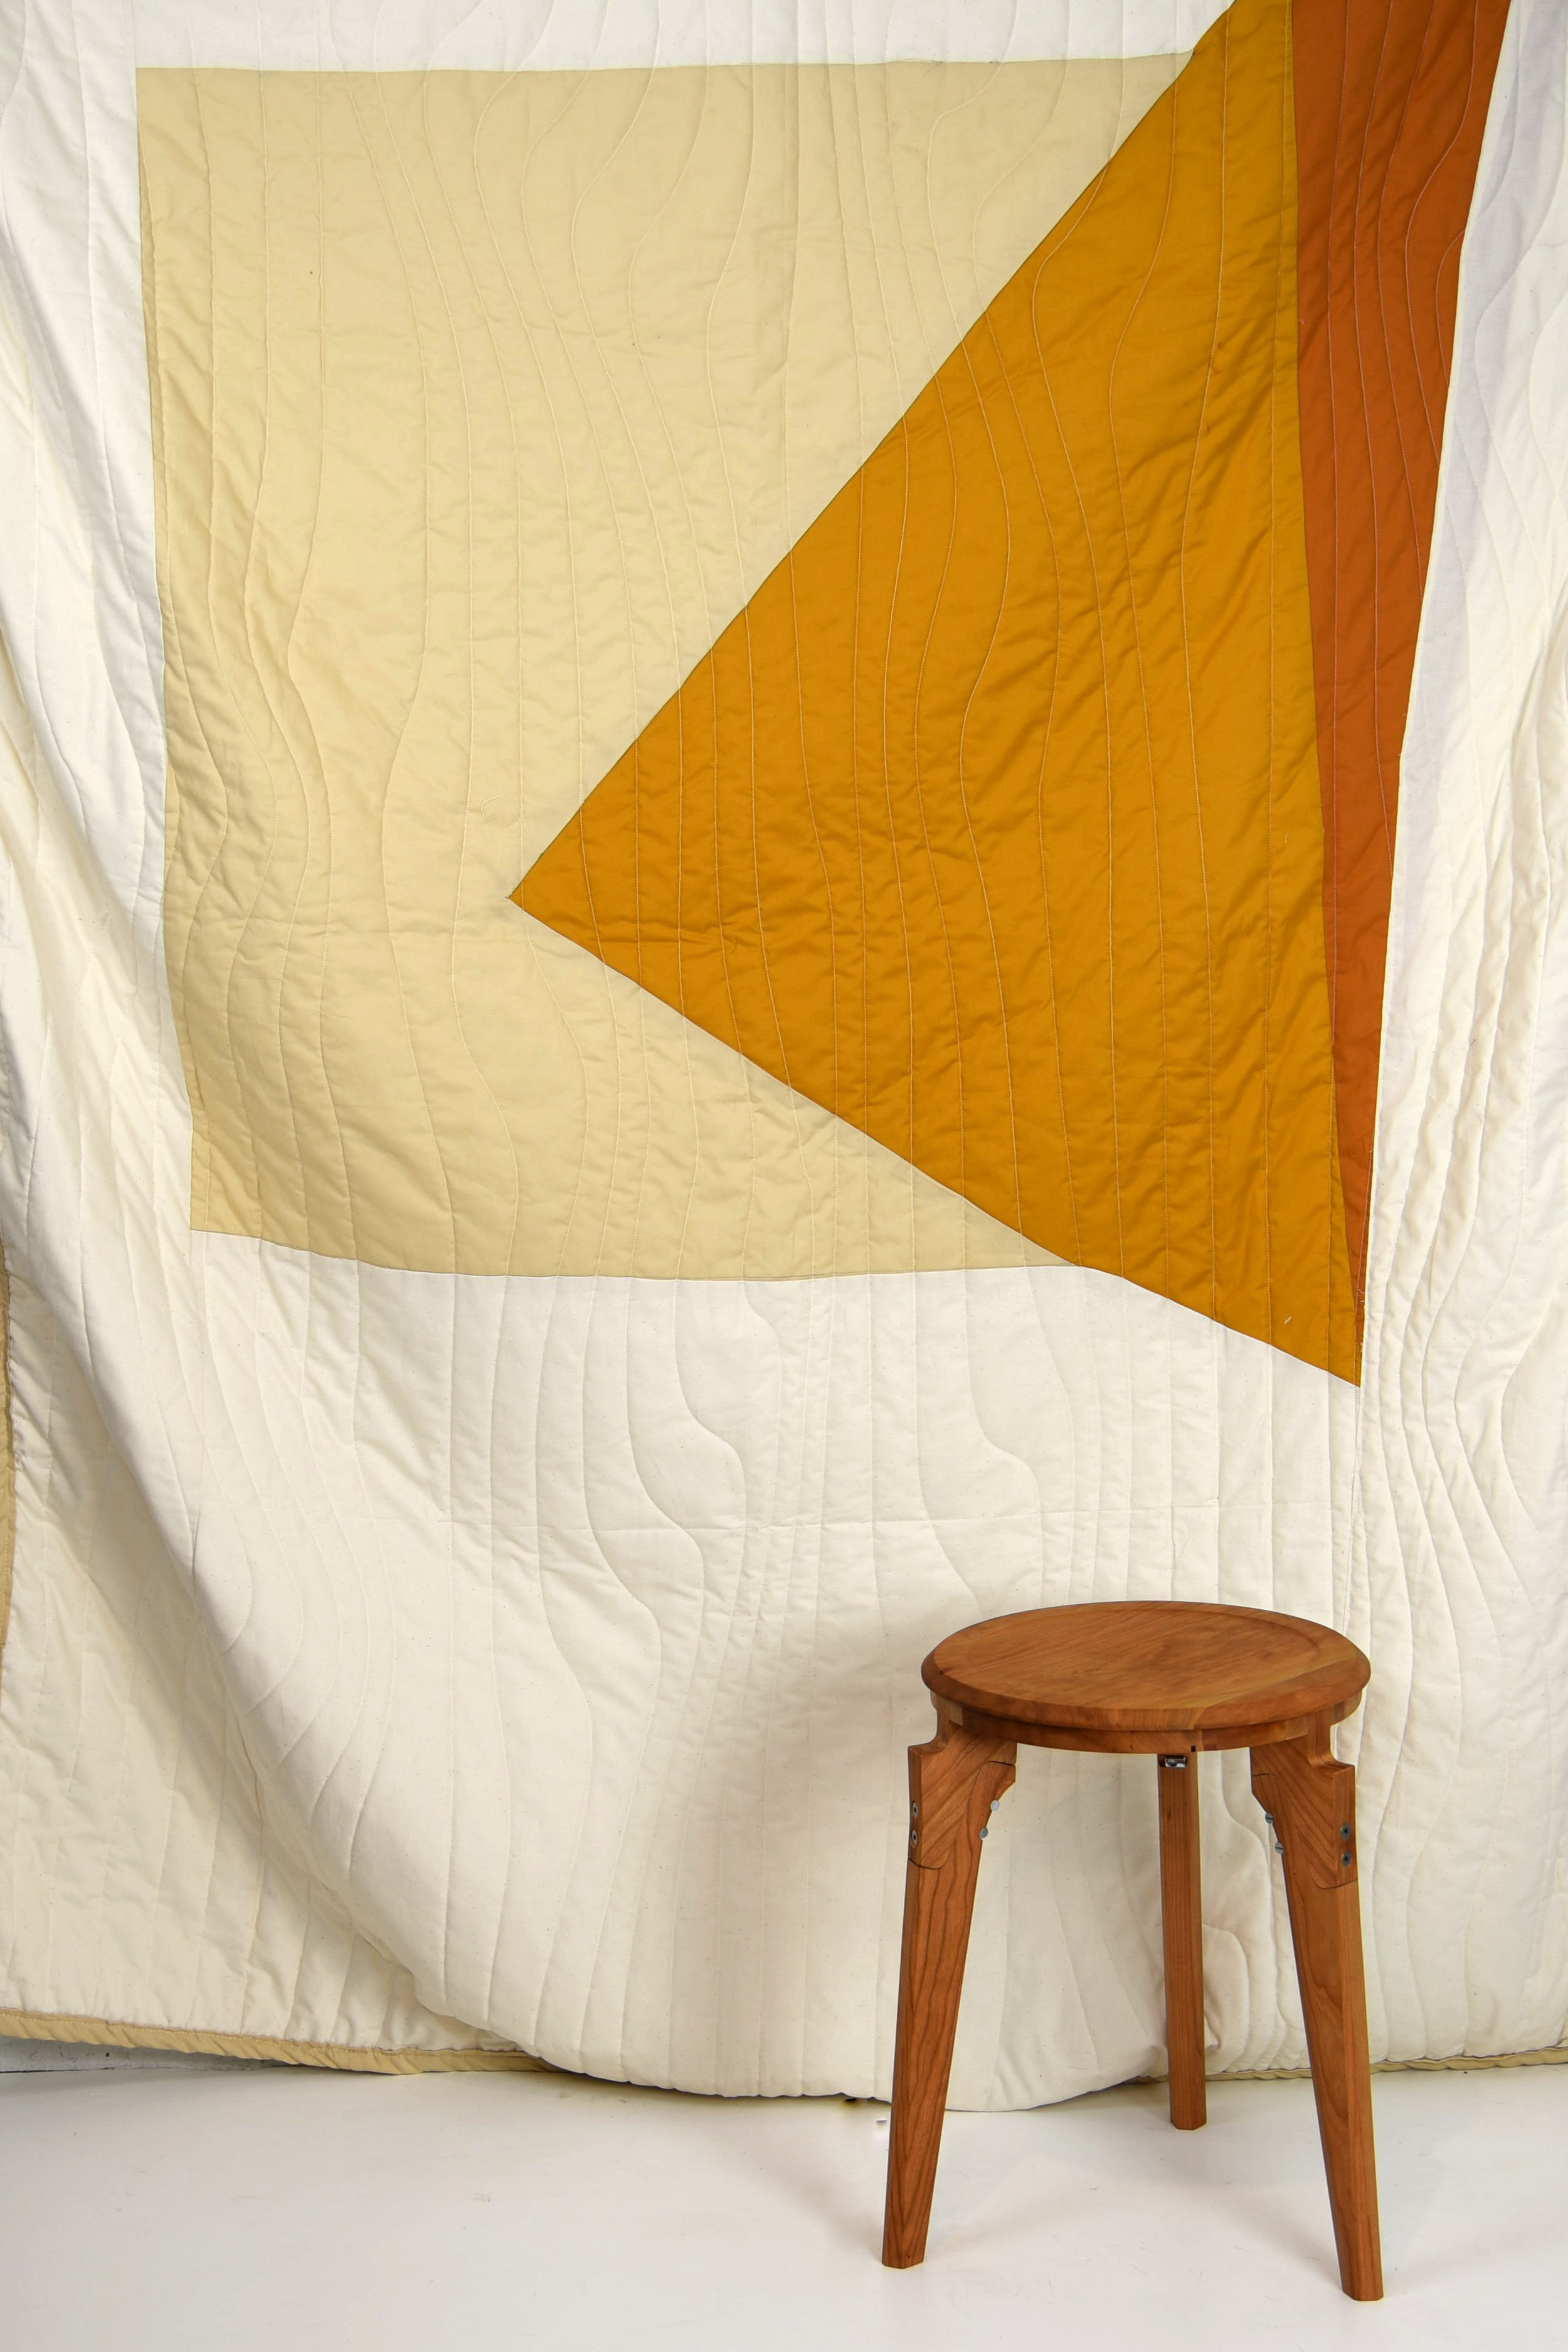 Stool and Sunset Wedge Quilt by KHEM Studios